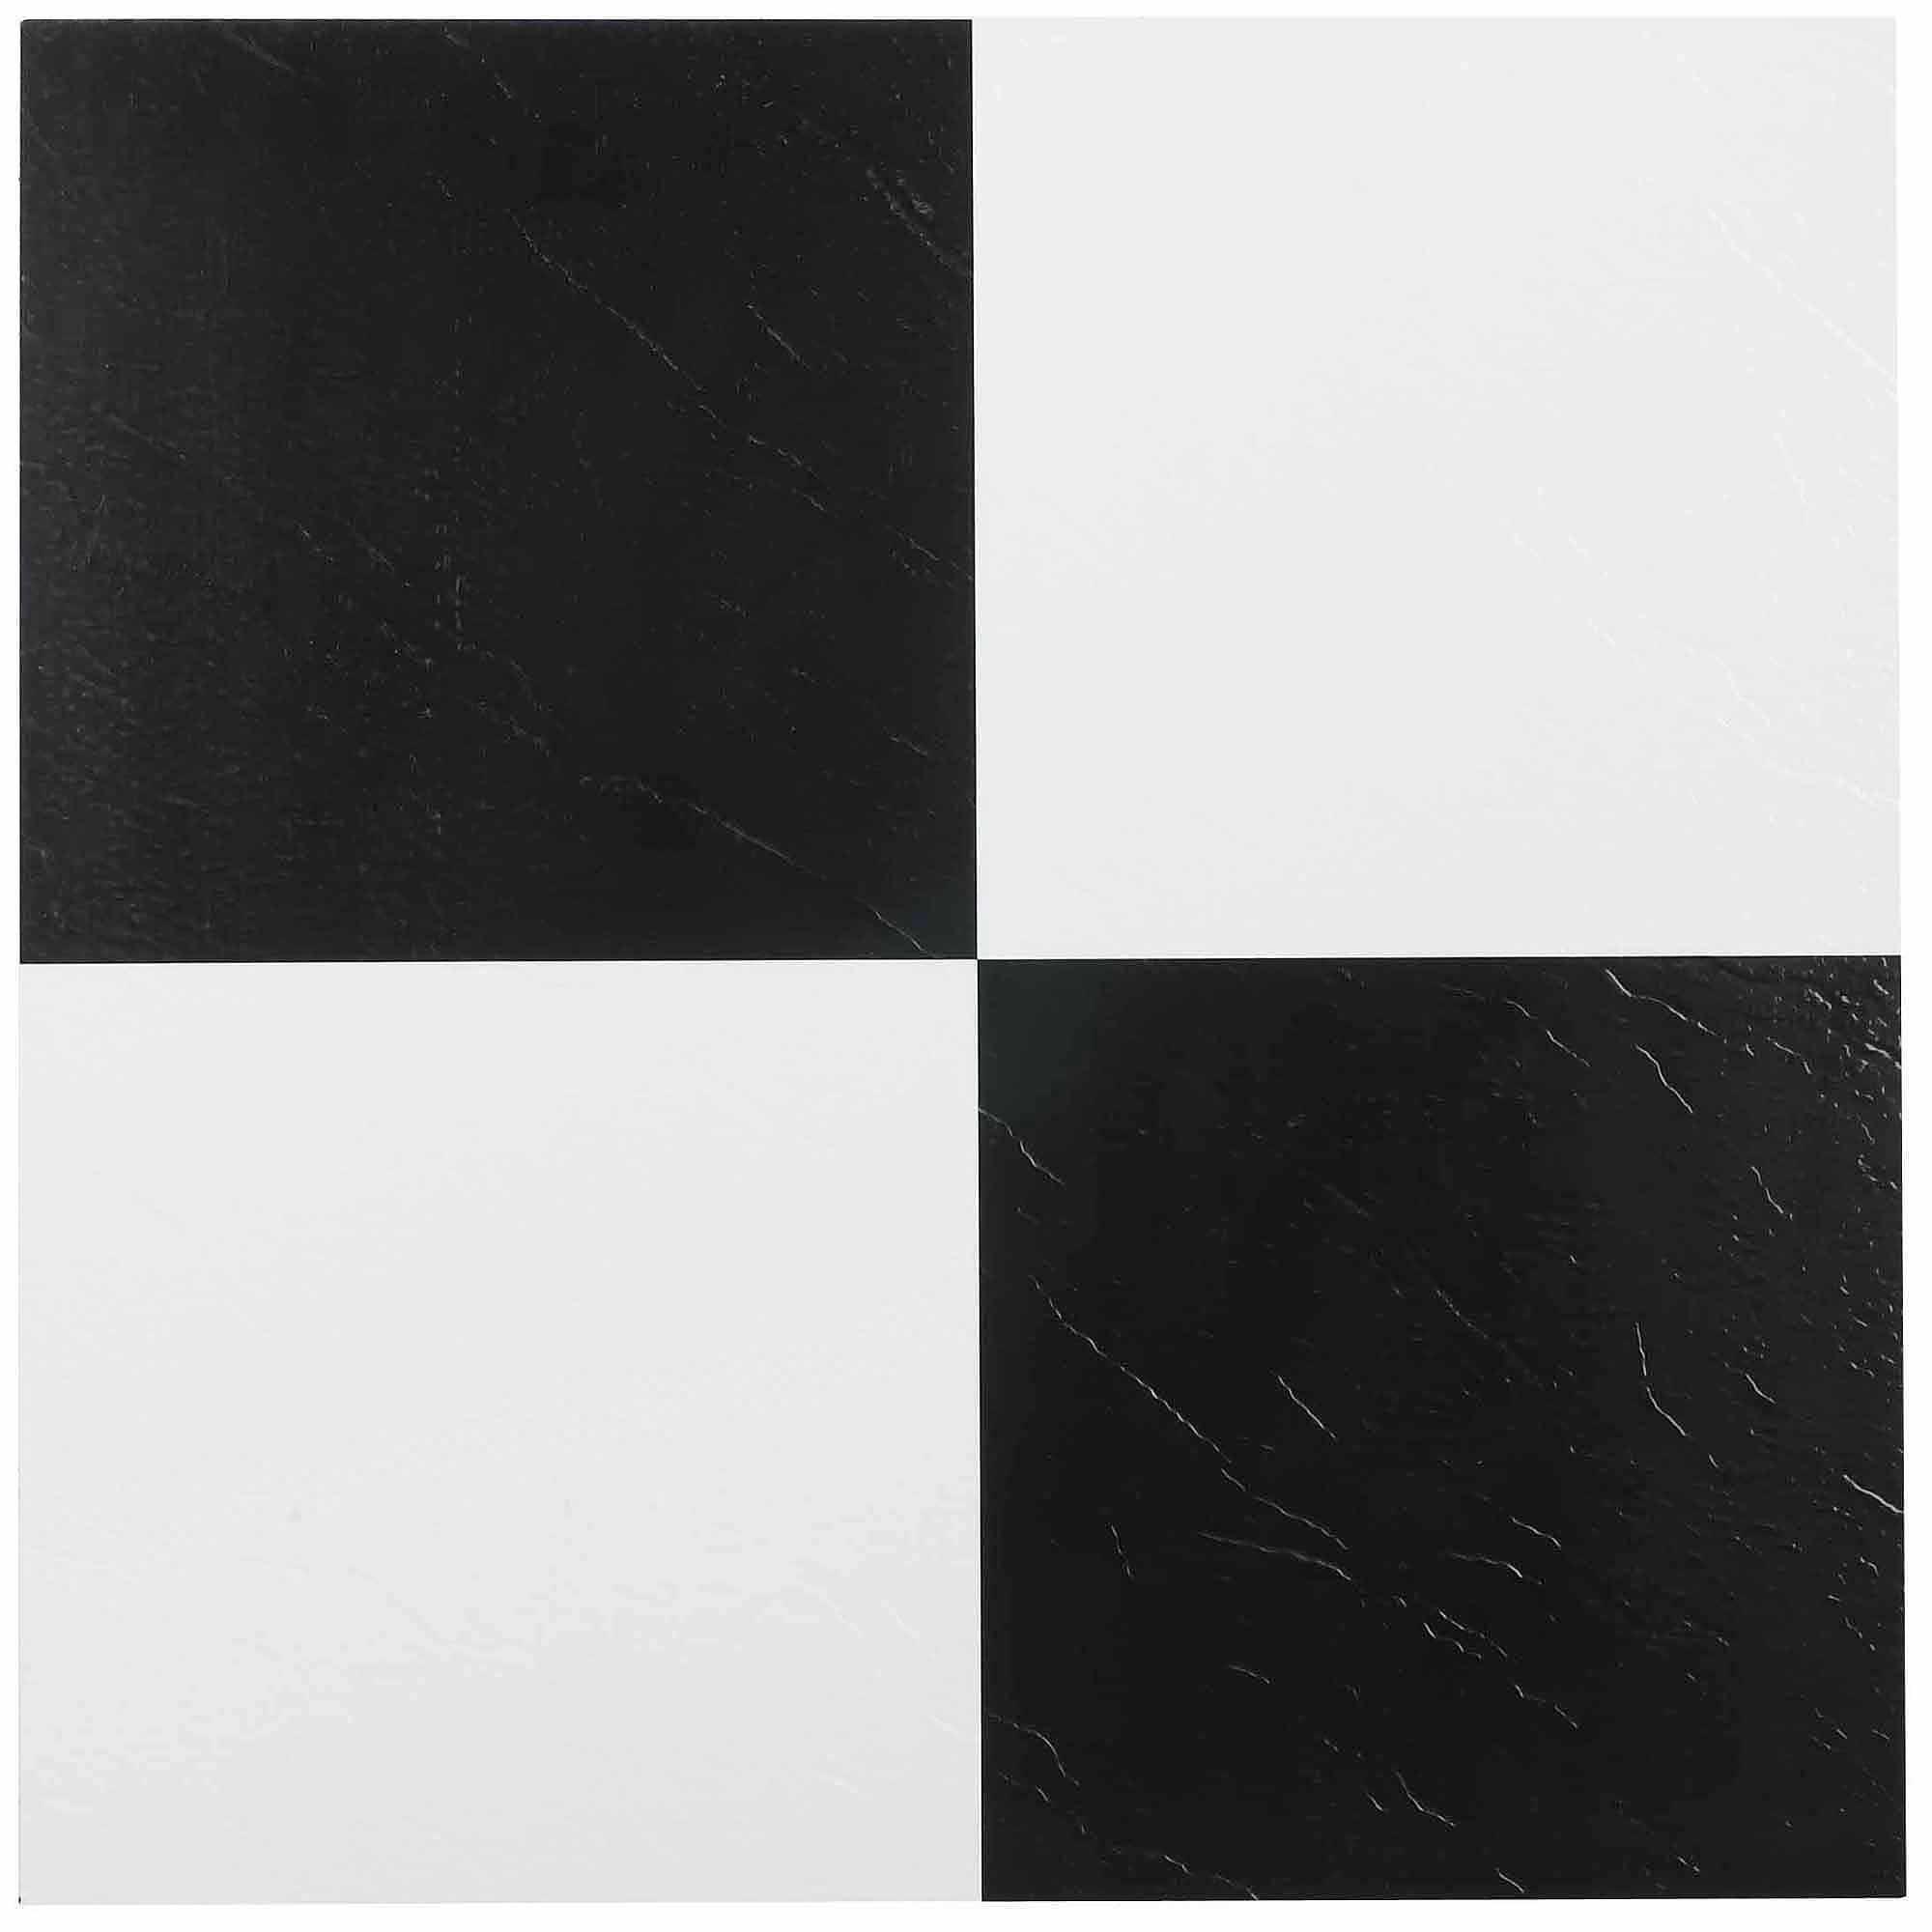 Nexus black white 12x12 self adhesive vinyl floor tile 20 nexus black white 12x12 self adhesive vinyl floor tile 20 tiles20 sqft walmart dailygadgetfo Image collections